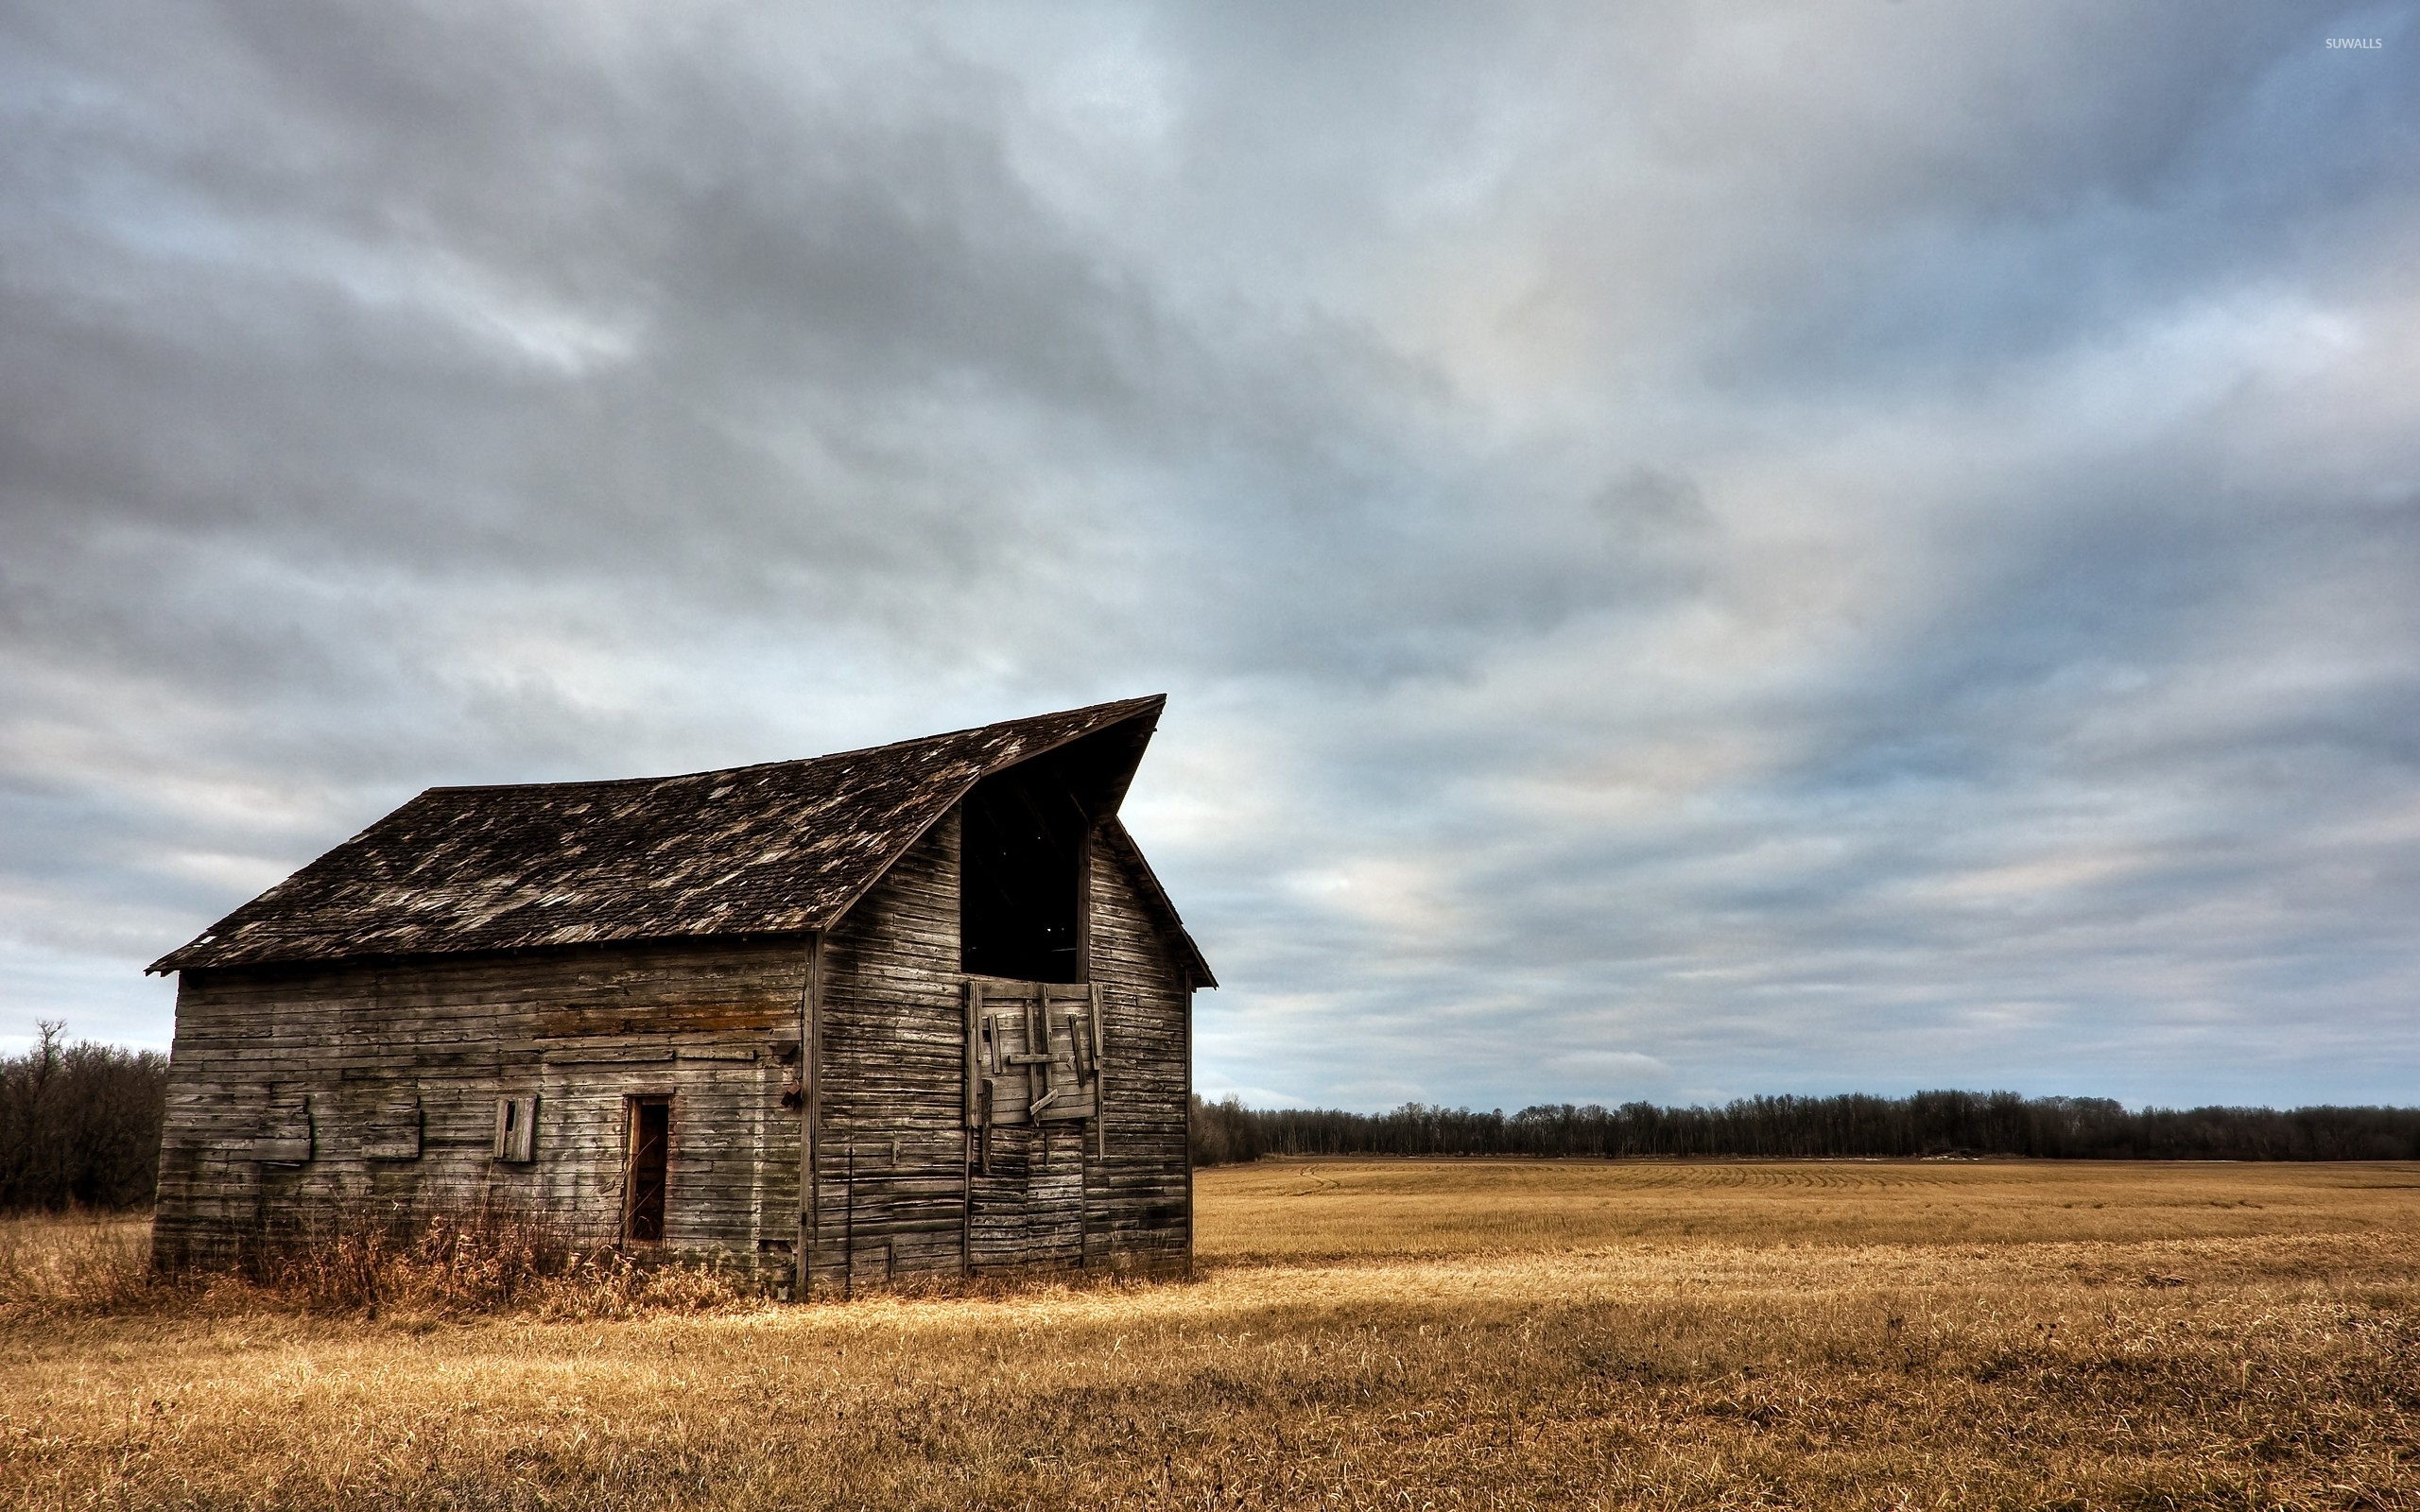 Abandoned-Wooden-Barn-On-A-Clouded-Day-48707-2560×1600-Wallpaper